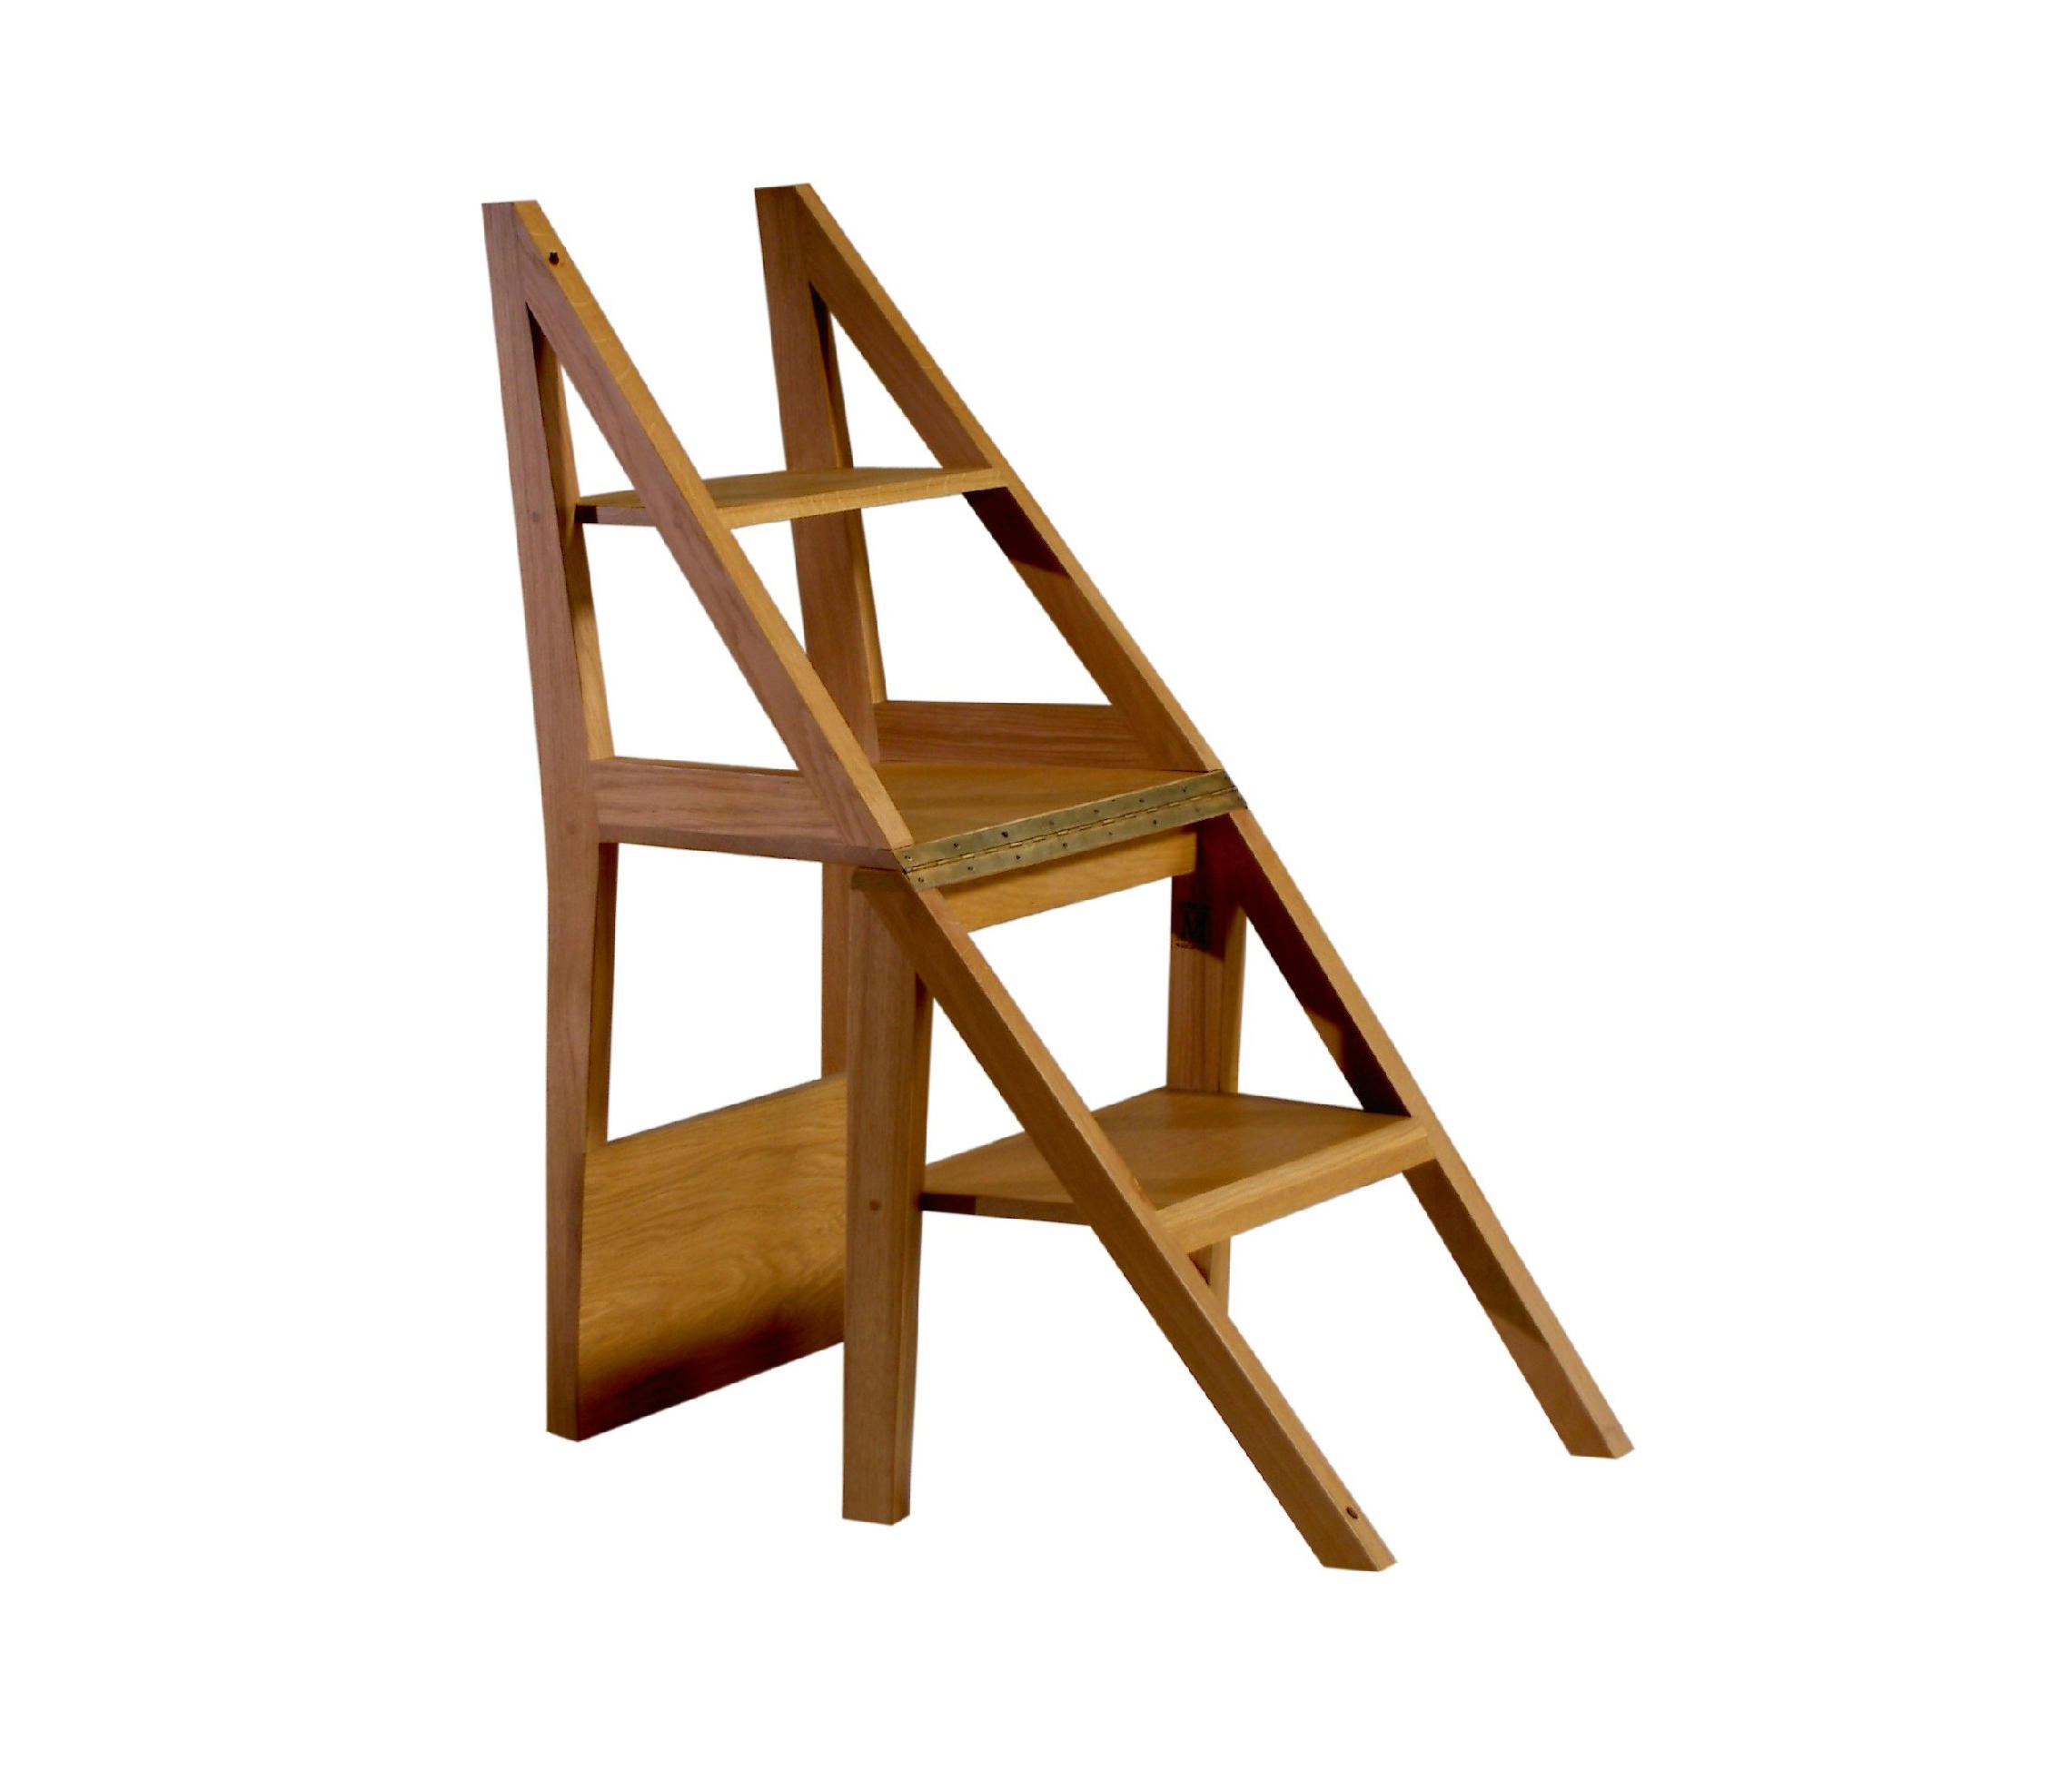 Sedia Scala Zero Library Ladders From Morelato Architonic